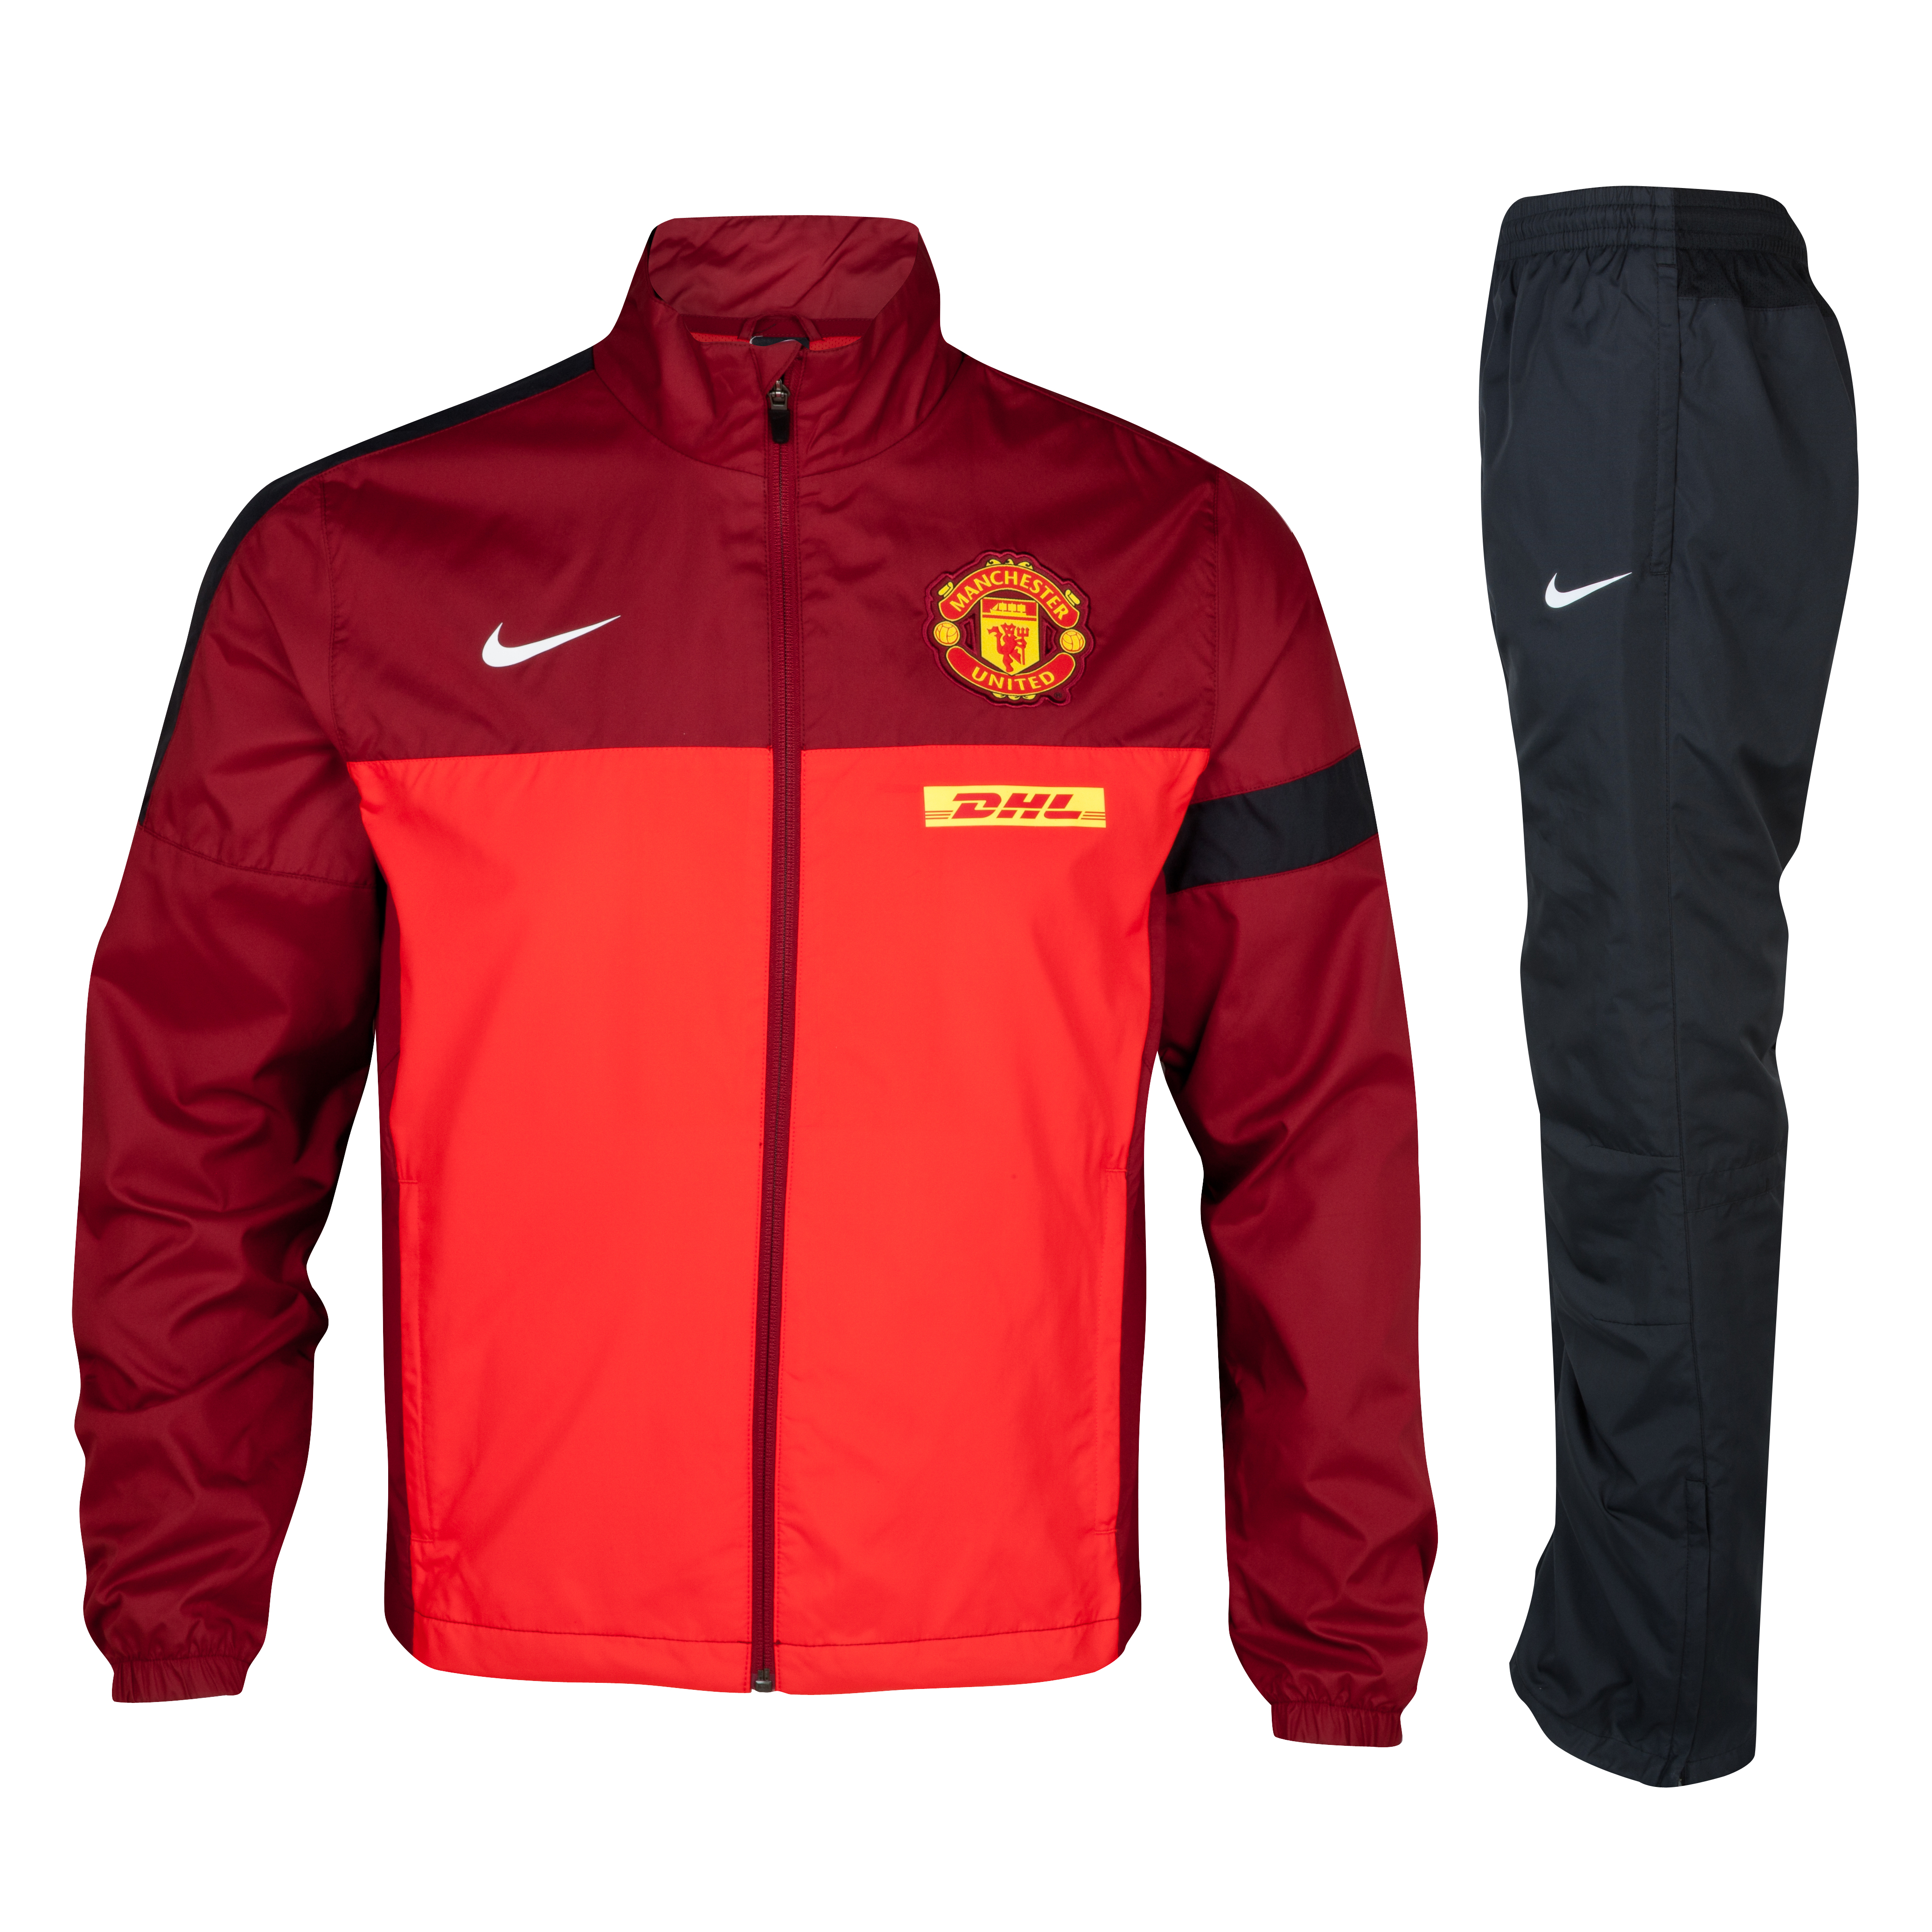 Manchester United Sideline Woven Warm Up Tracksuit - Challenge Red/Team Red/Black/White - Youths